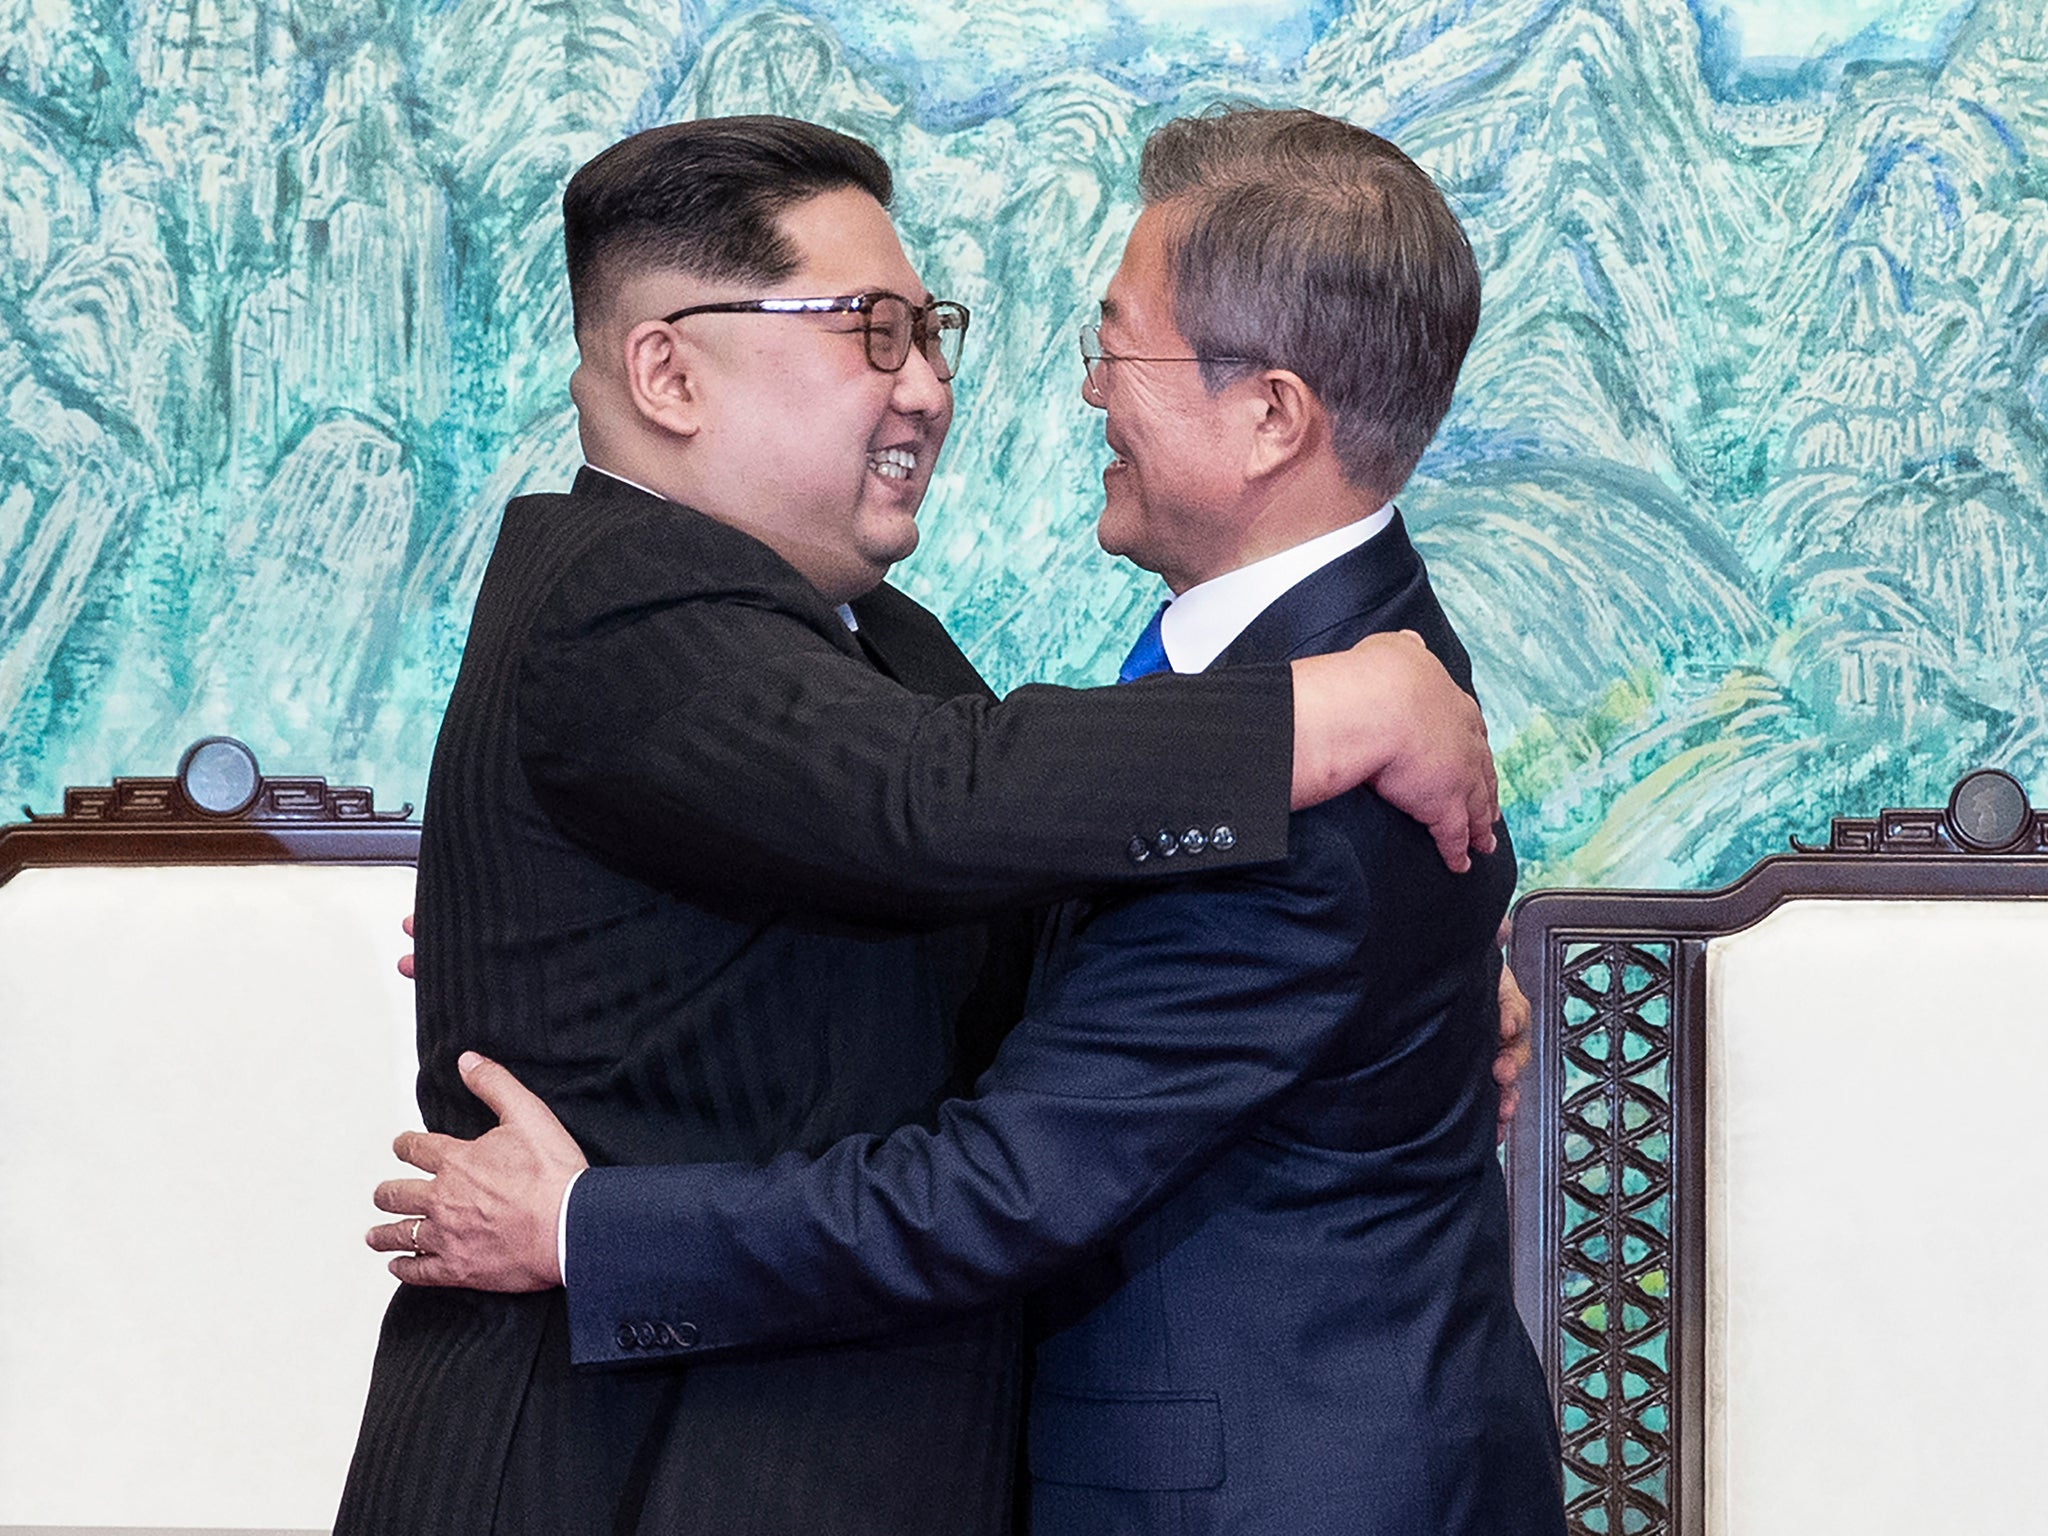 Yes We Should Celebrate The Newfound Peace Between North And South